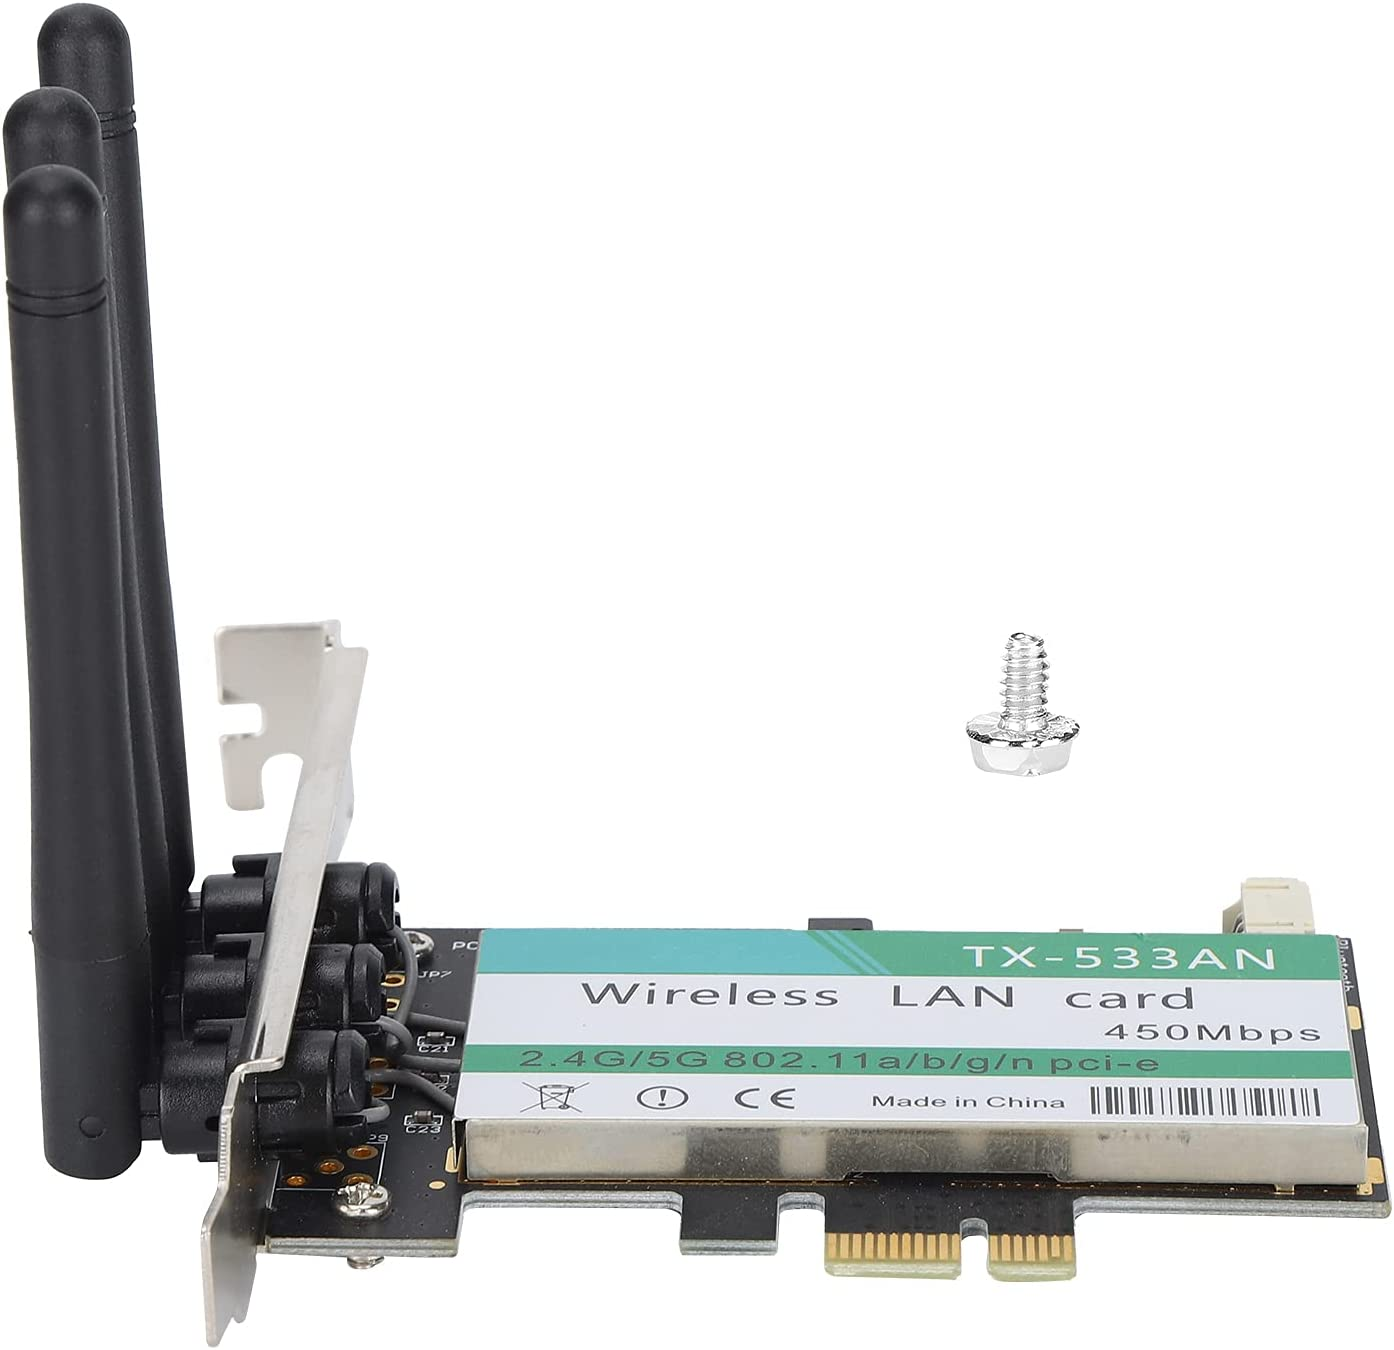 WiFi famous Adapter SEAL limited product Card 2.4Ghz PCI‑E Mini Dual‑Band 5Ghz